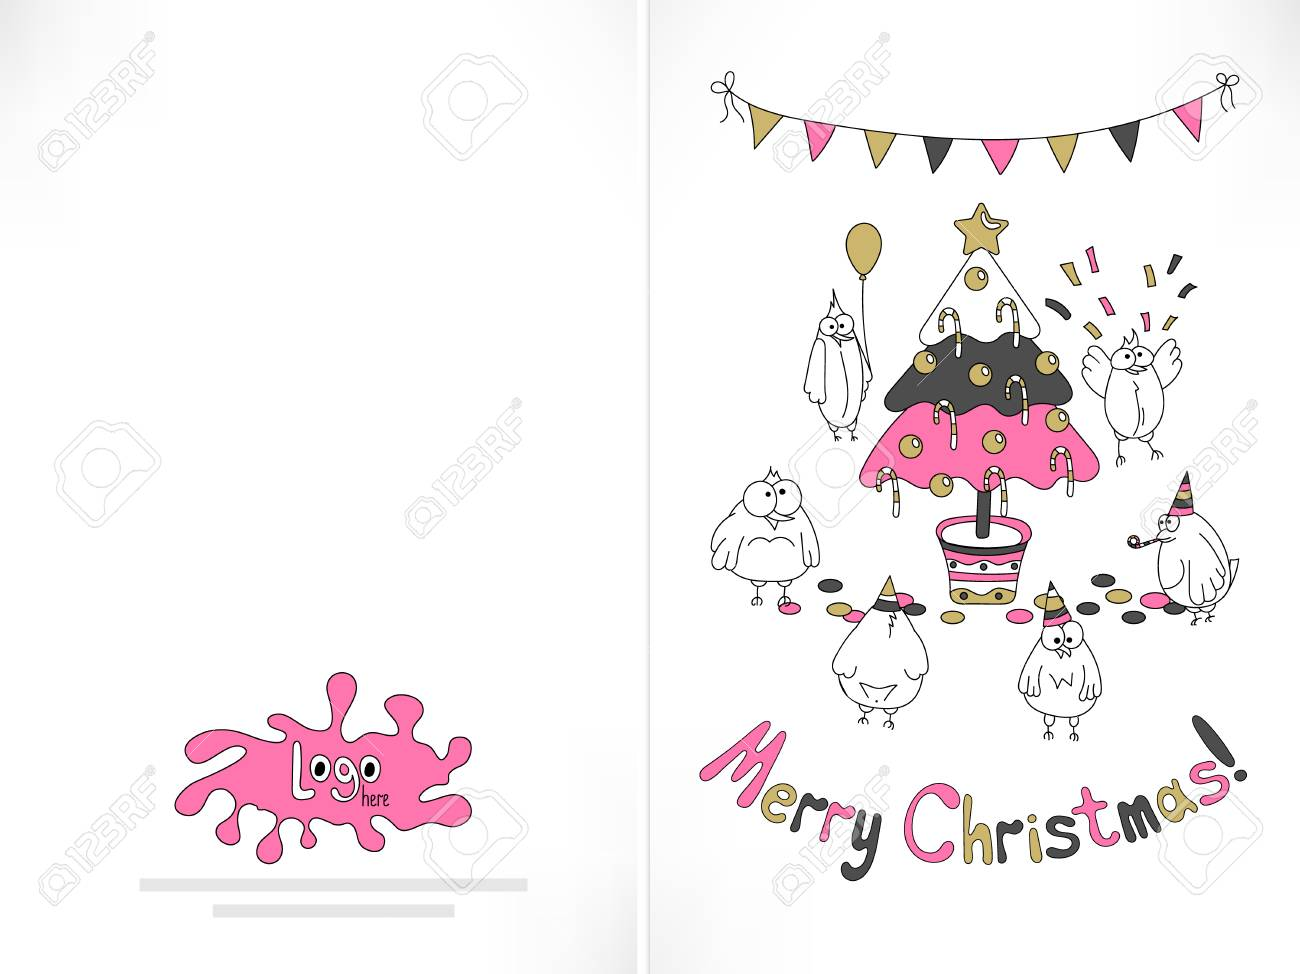 graphic about Funny Printable Christmas Cards identify Organized in the direction of print Xmas card. Humorous birds amassed above the..